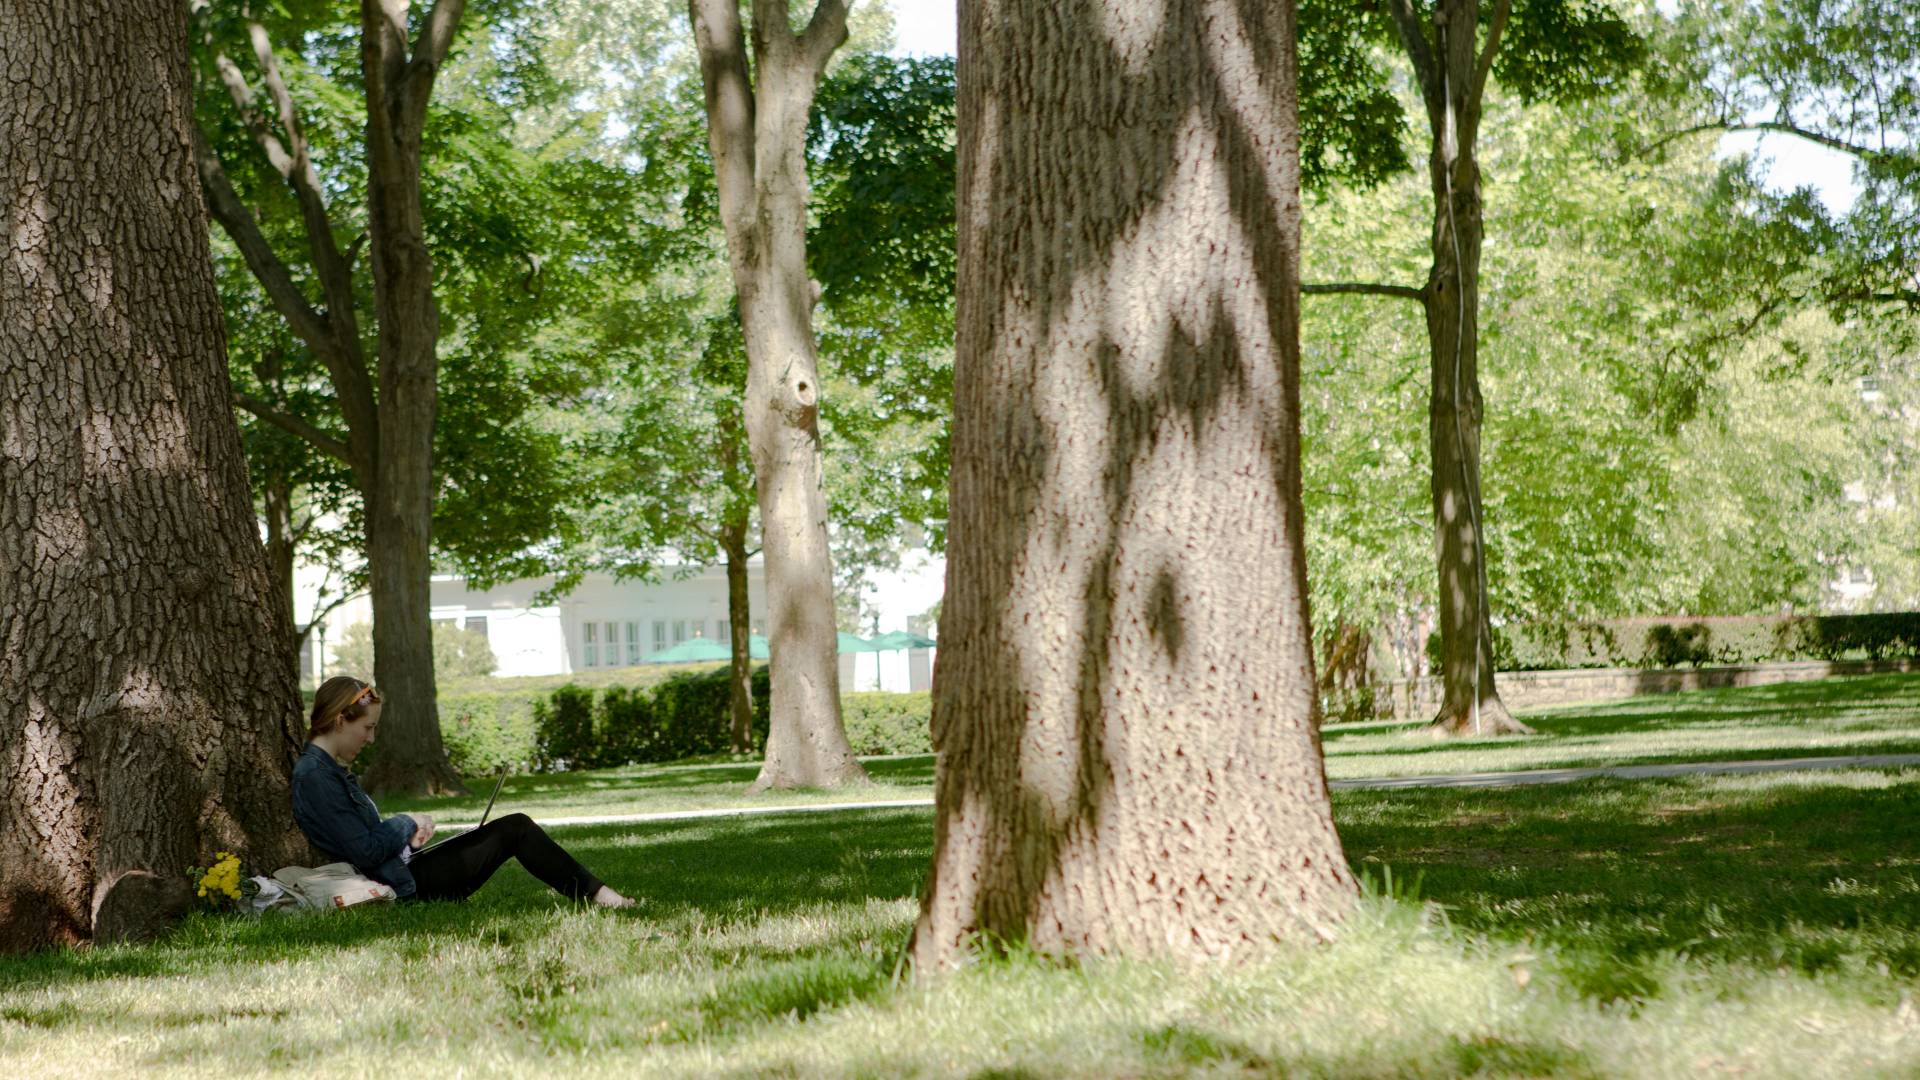 Student sitting under tree on campus